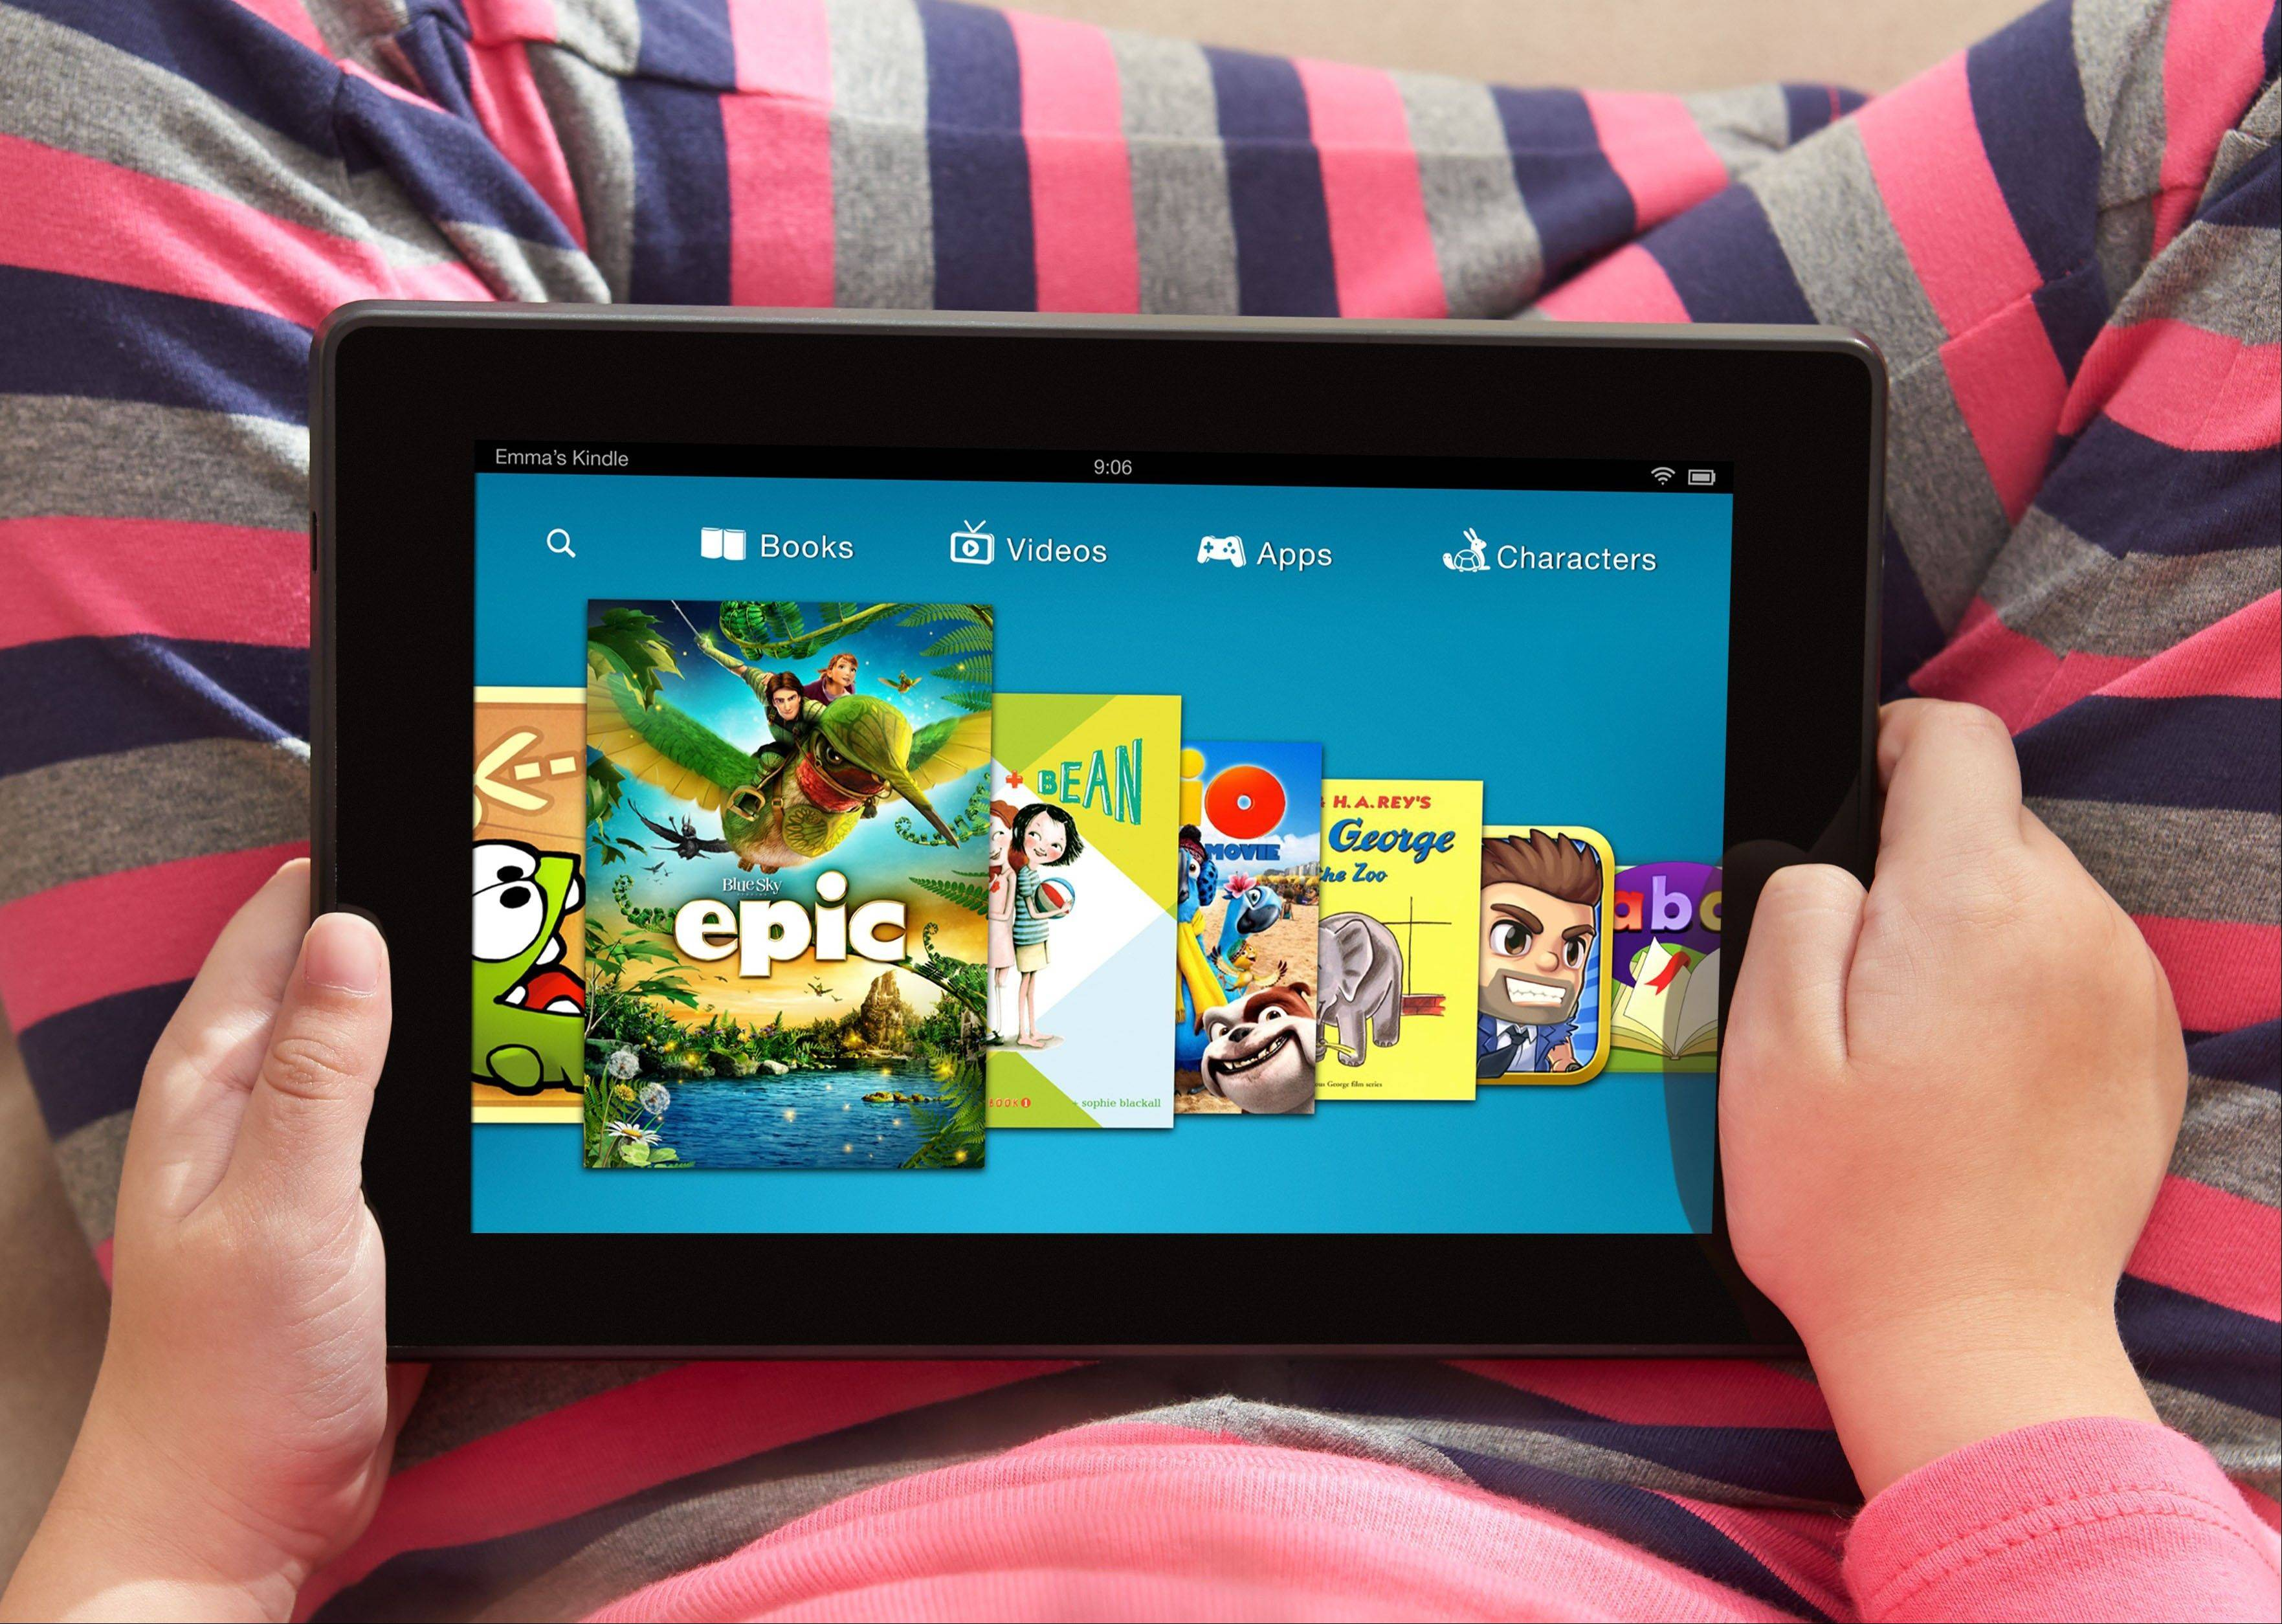 Review: Kindle FreeTime gives parents peace